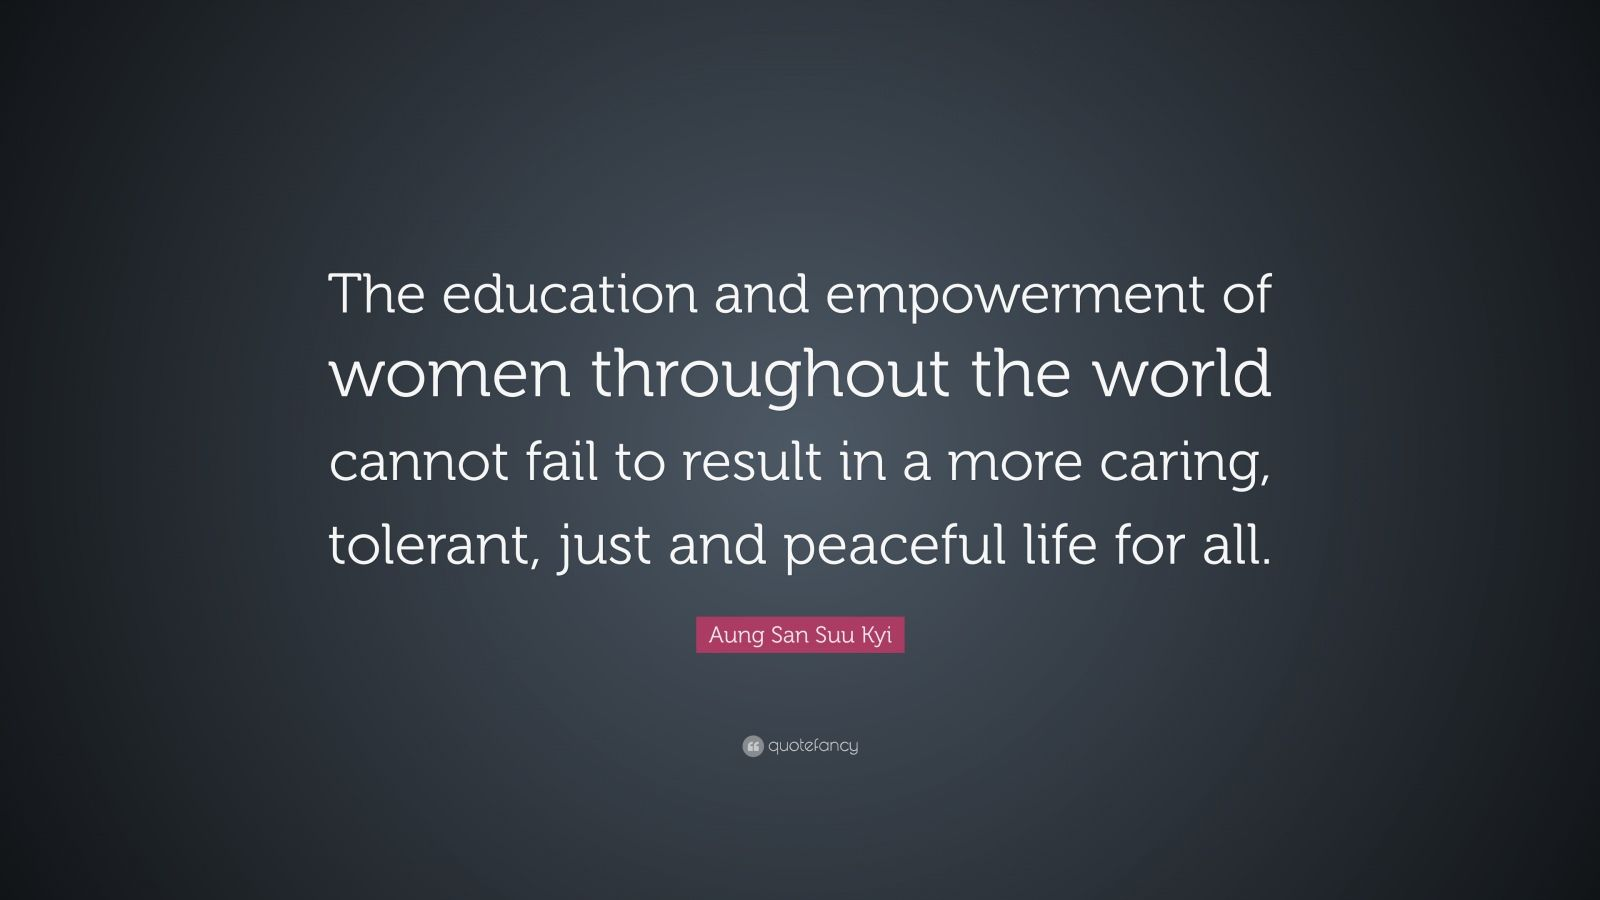 """Aung San Suu Kyi Quote: """"The education and empowerment of women throughout the world cannot fail to result in a more caring, tolerant, just and peaceful life for all."""""""